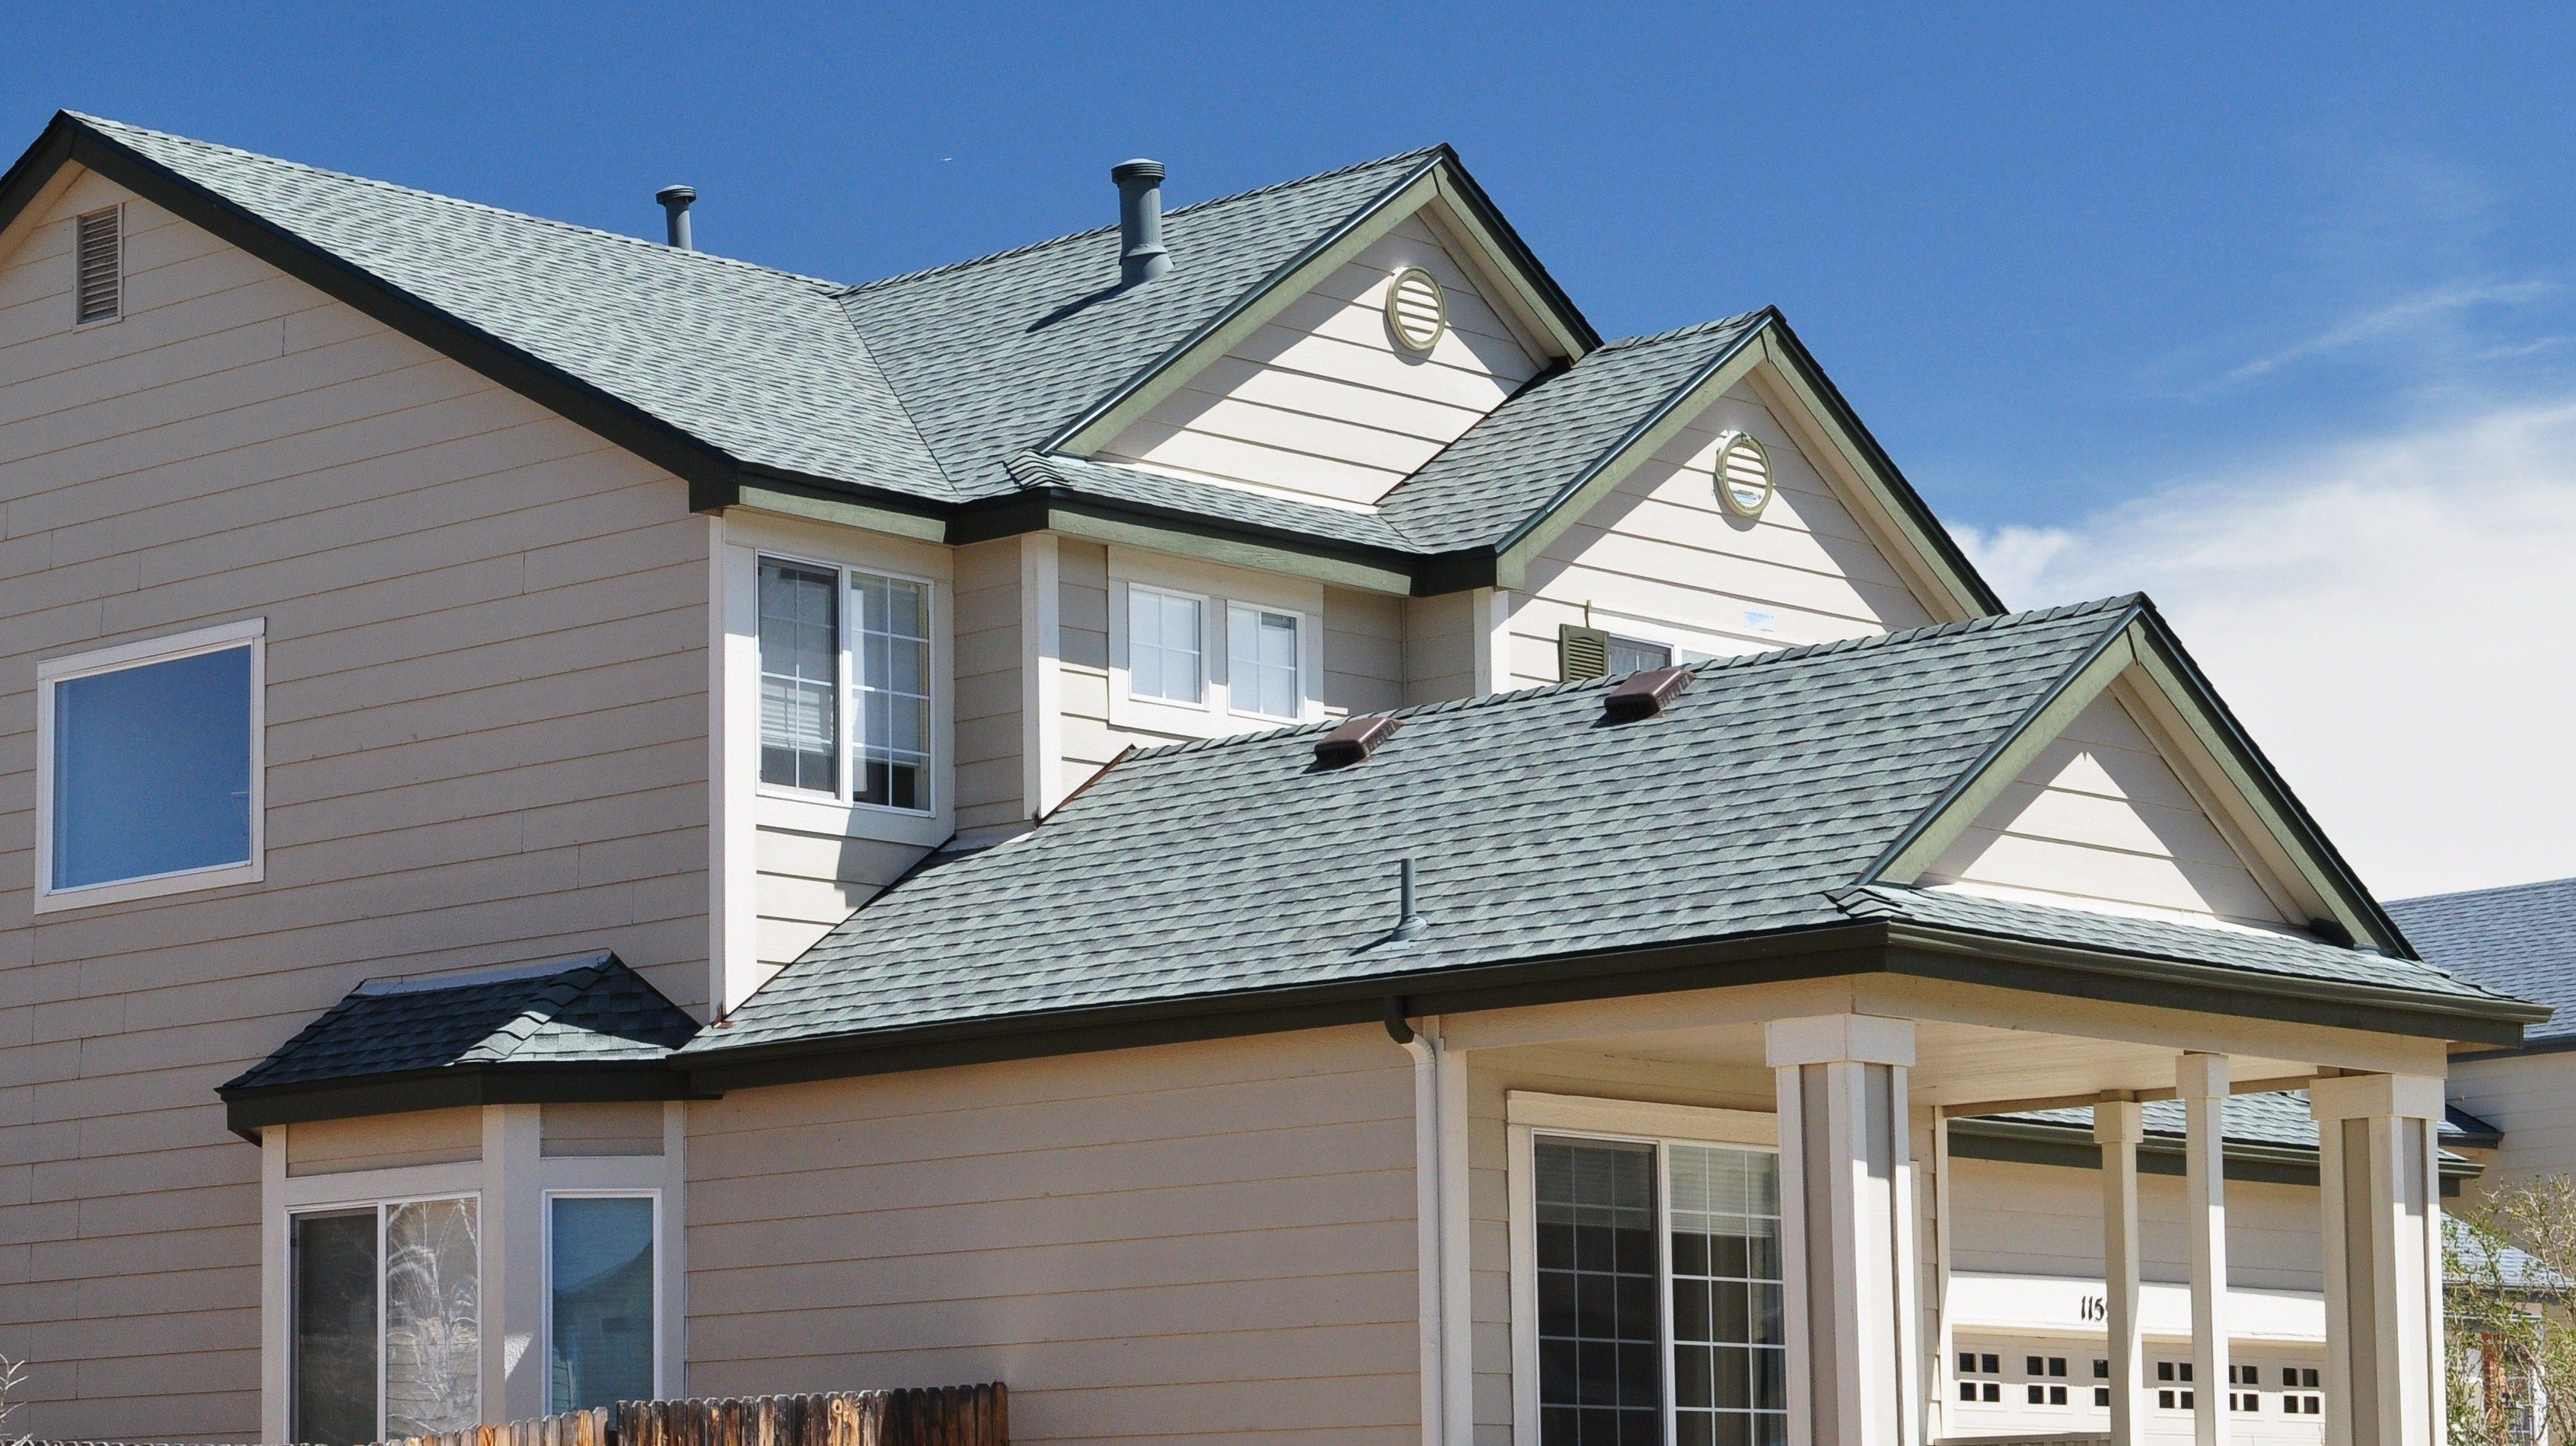 Roof Cleaning Maintenance Vancouver Wa Portland Or Residential Roofing Roofing Contractors Commercial Roofing